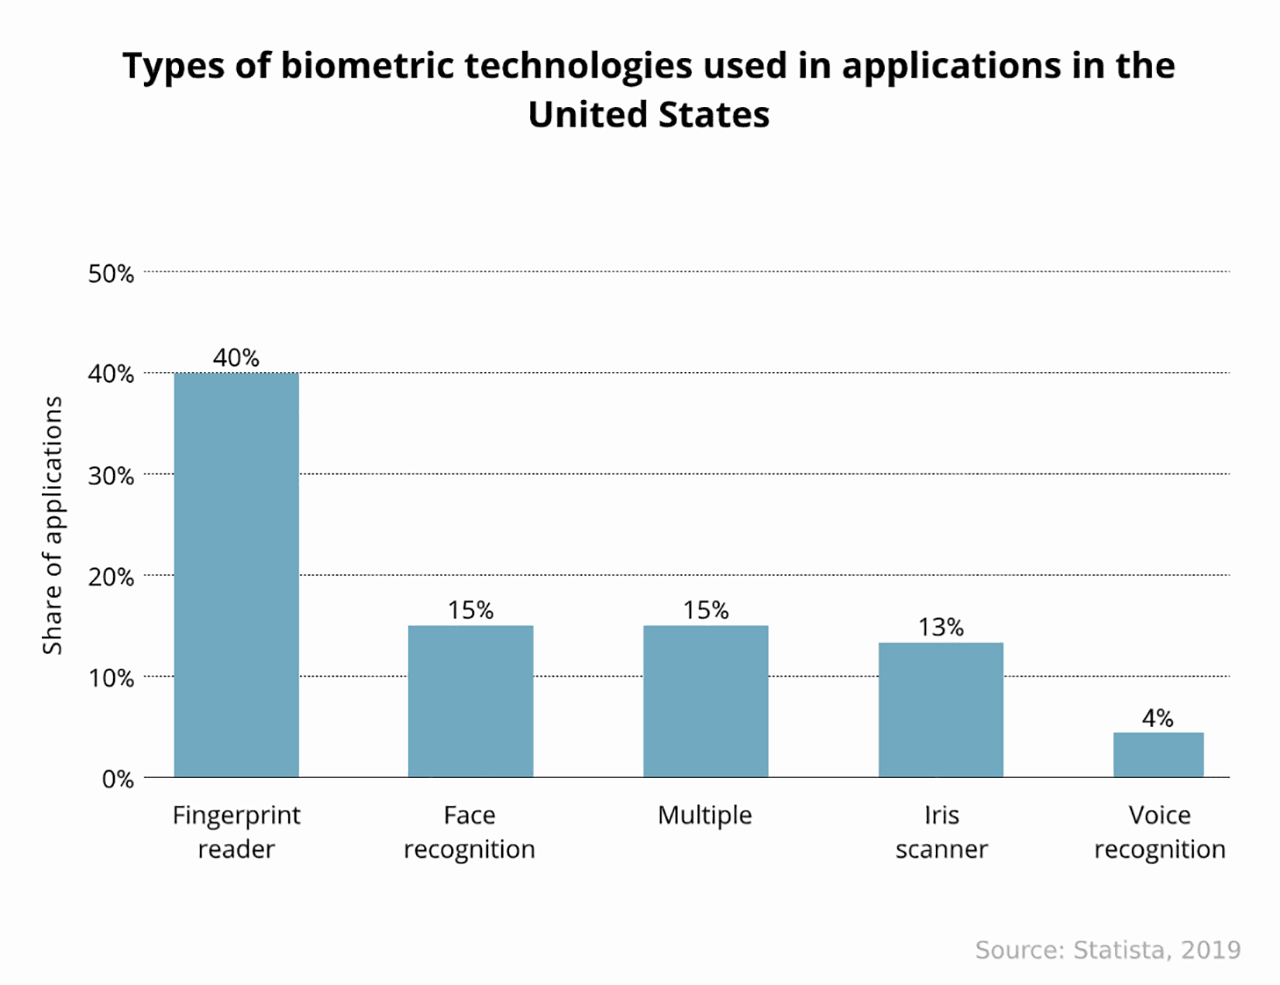 Types of biometric technologies used in applications in the United States